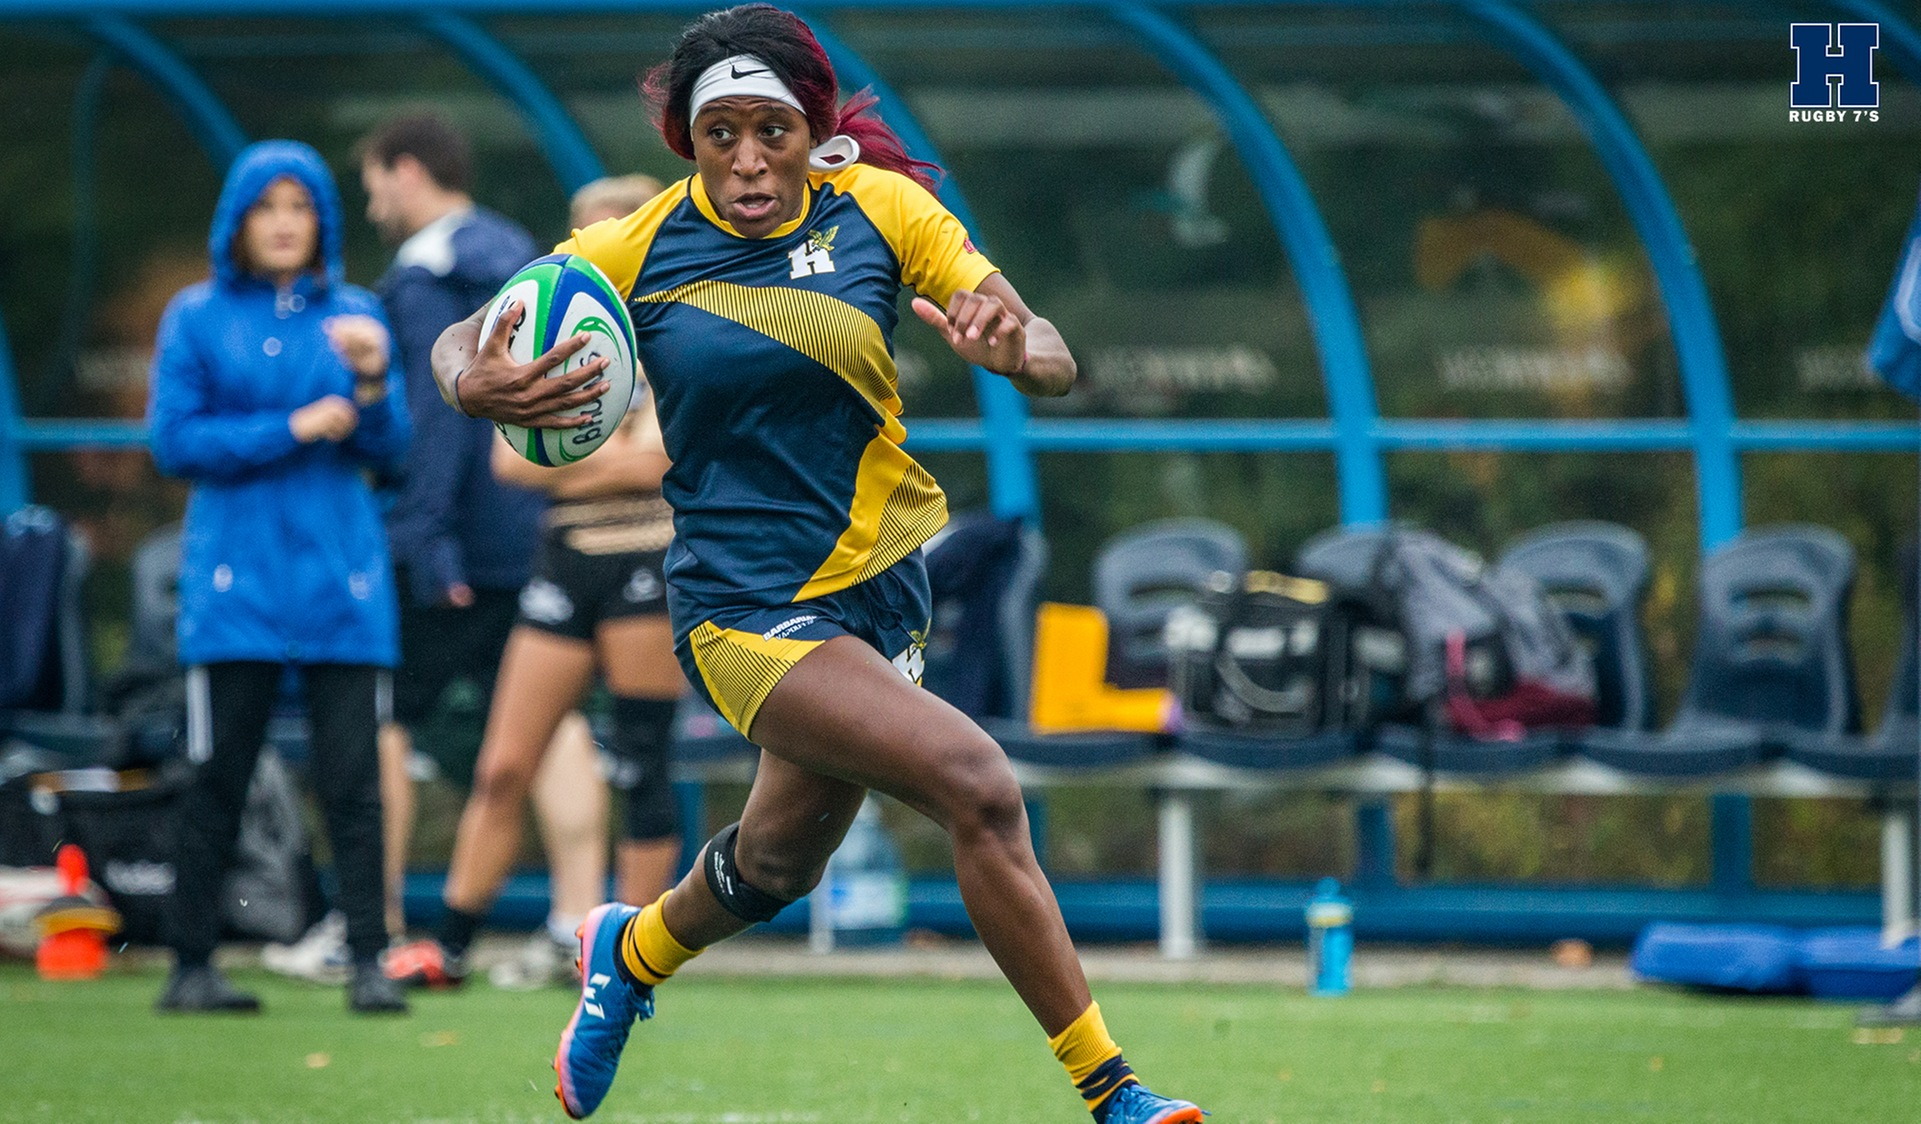 Rugby 7's Finishes East/West With 3-1 Record, Branch Sets New OCAA Single-Game Record